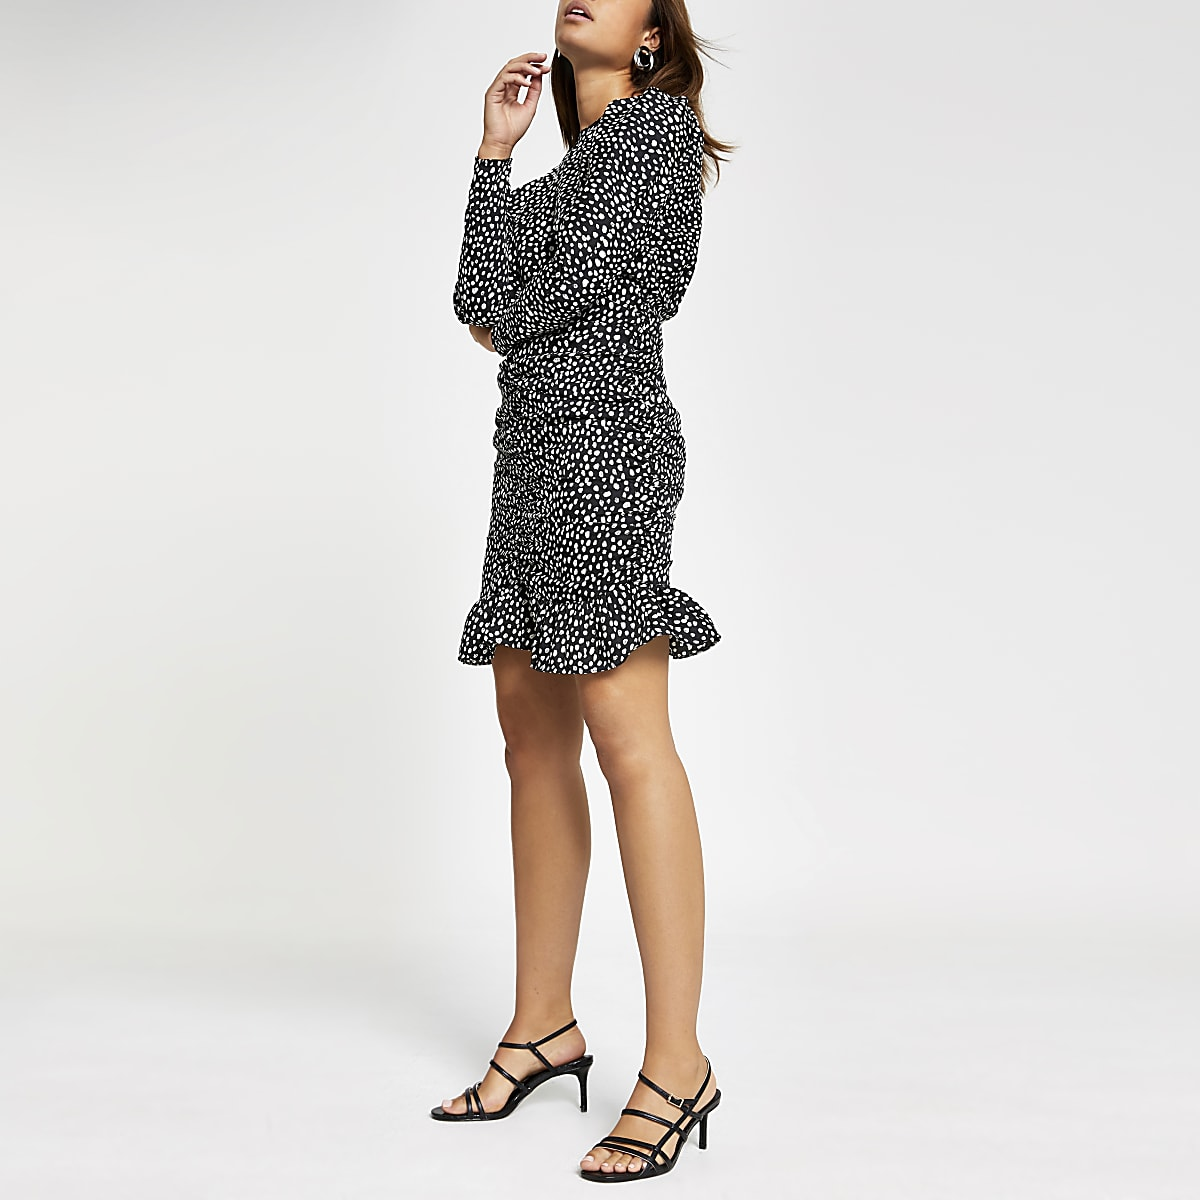 Black polka dot ruched mini dress